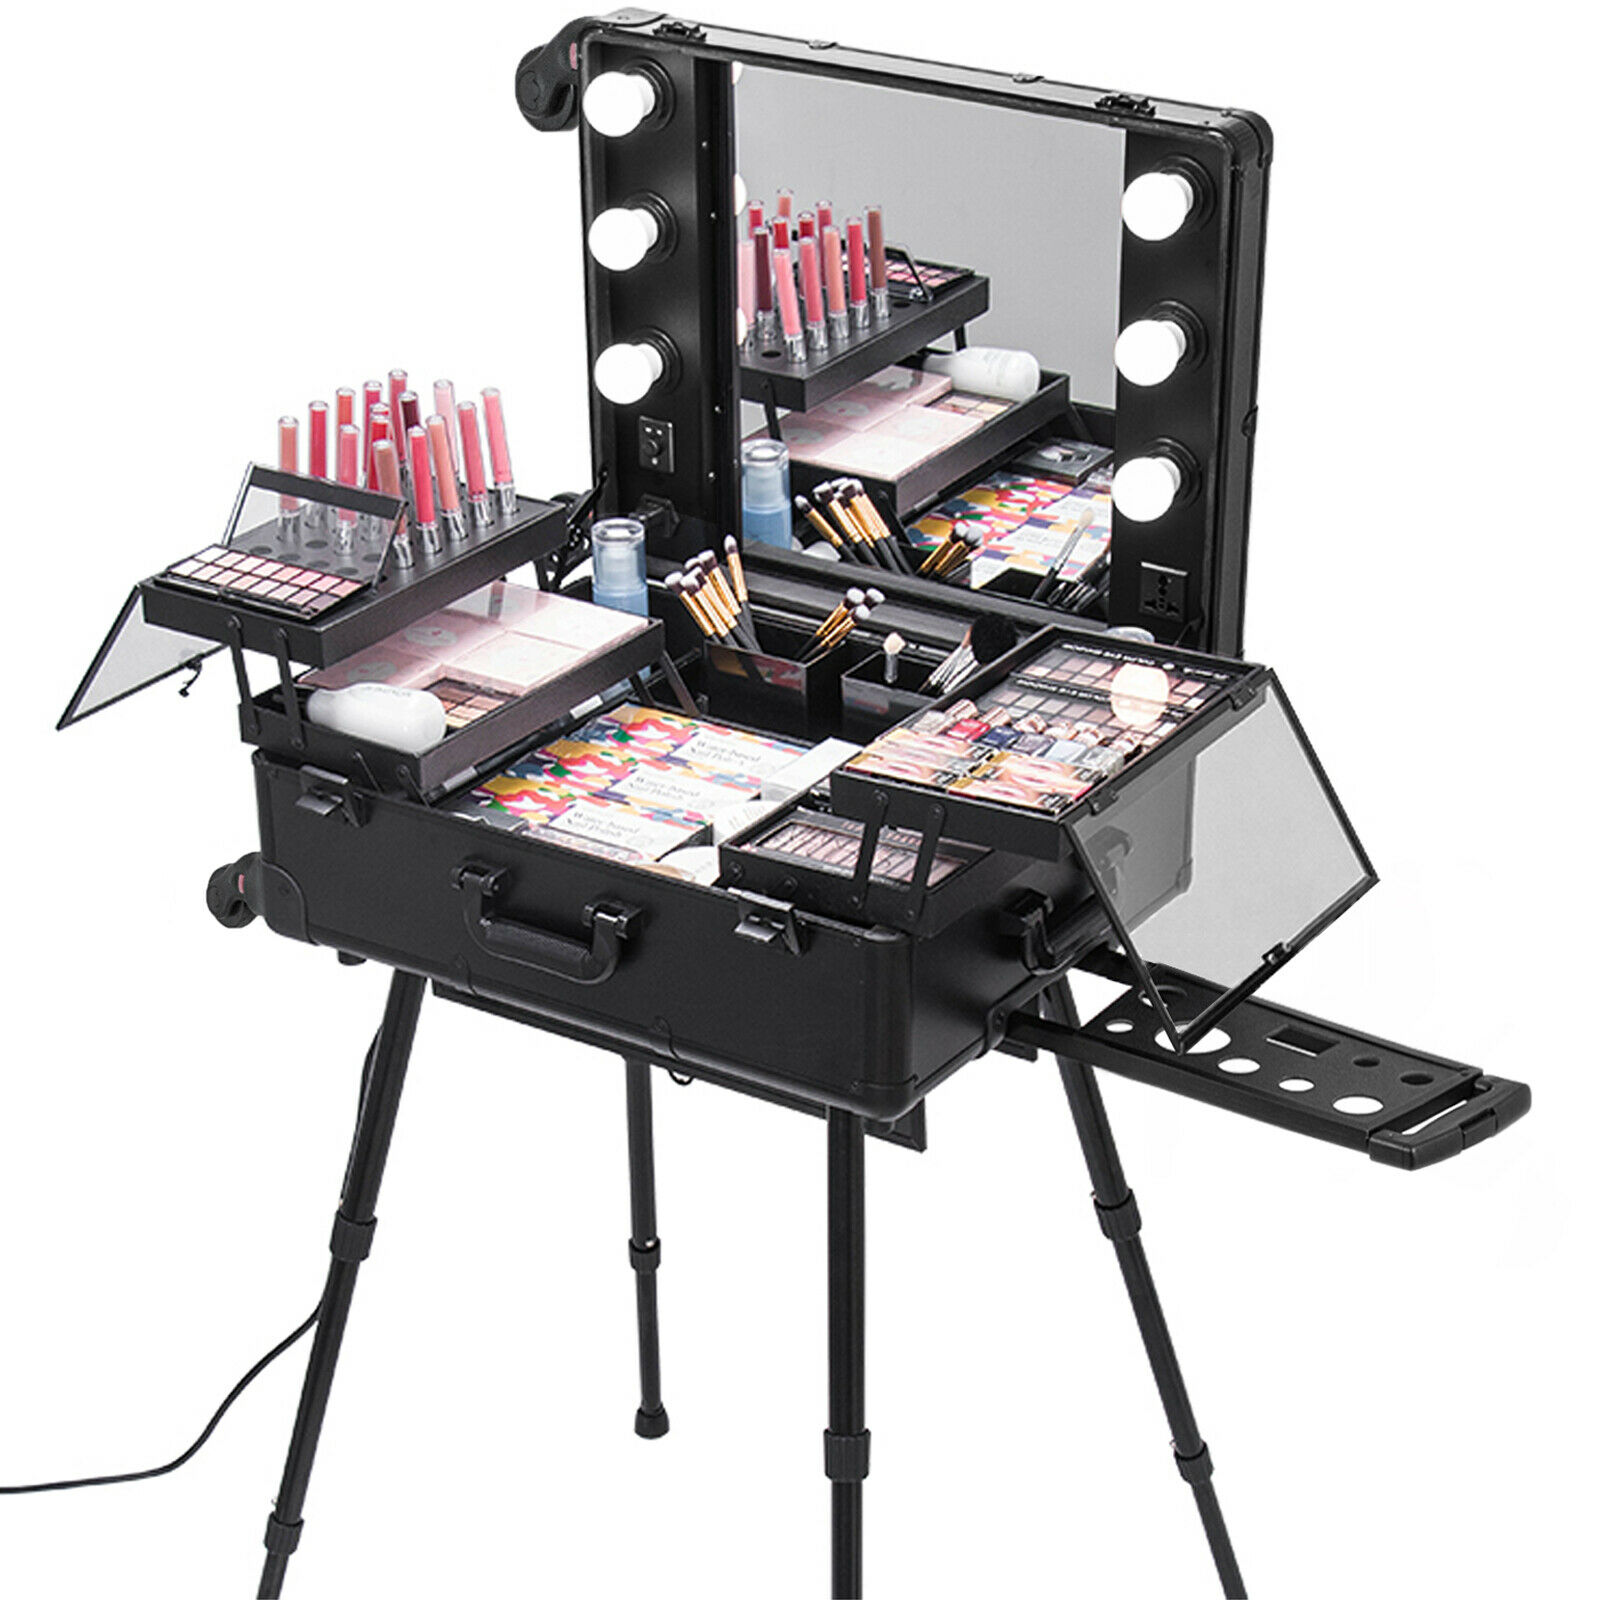 2 in 1 Cosmetic Cosmetic Case Trolley Travel Case With Leg LED Light High Stability Support Diverse